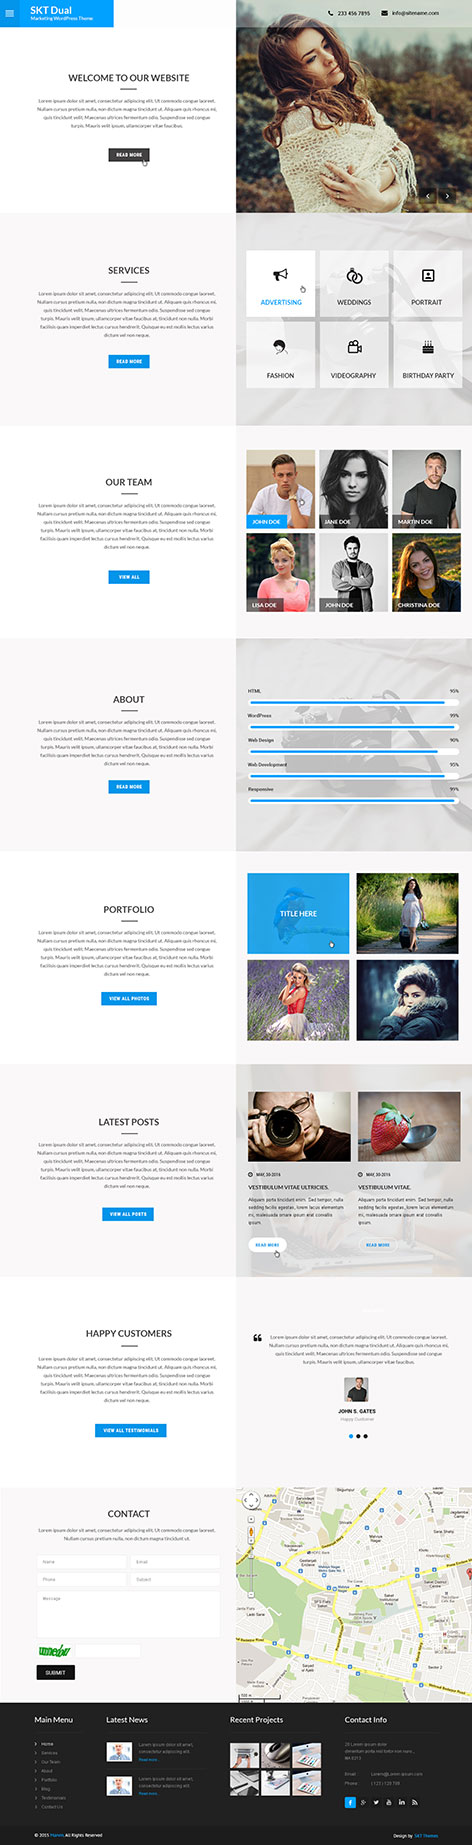 2 Screen WordPress theme